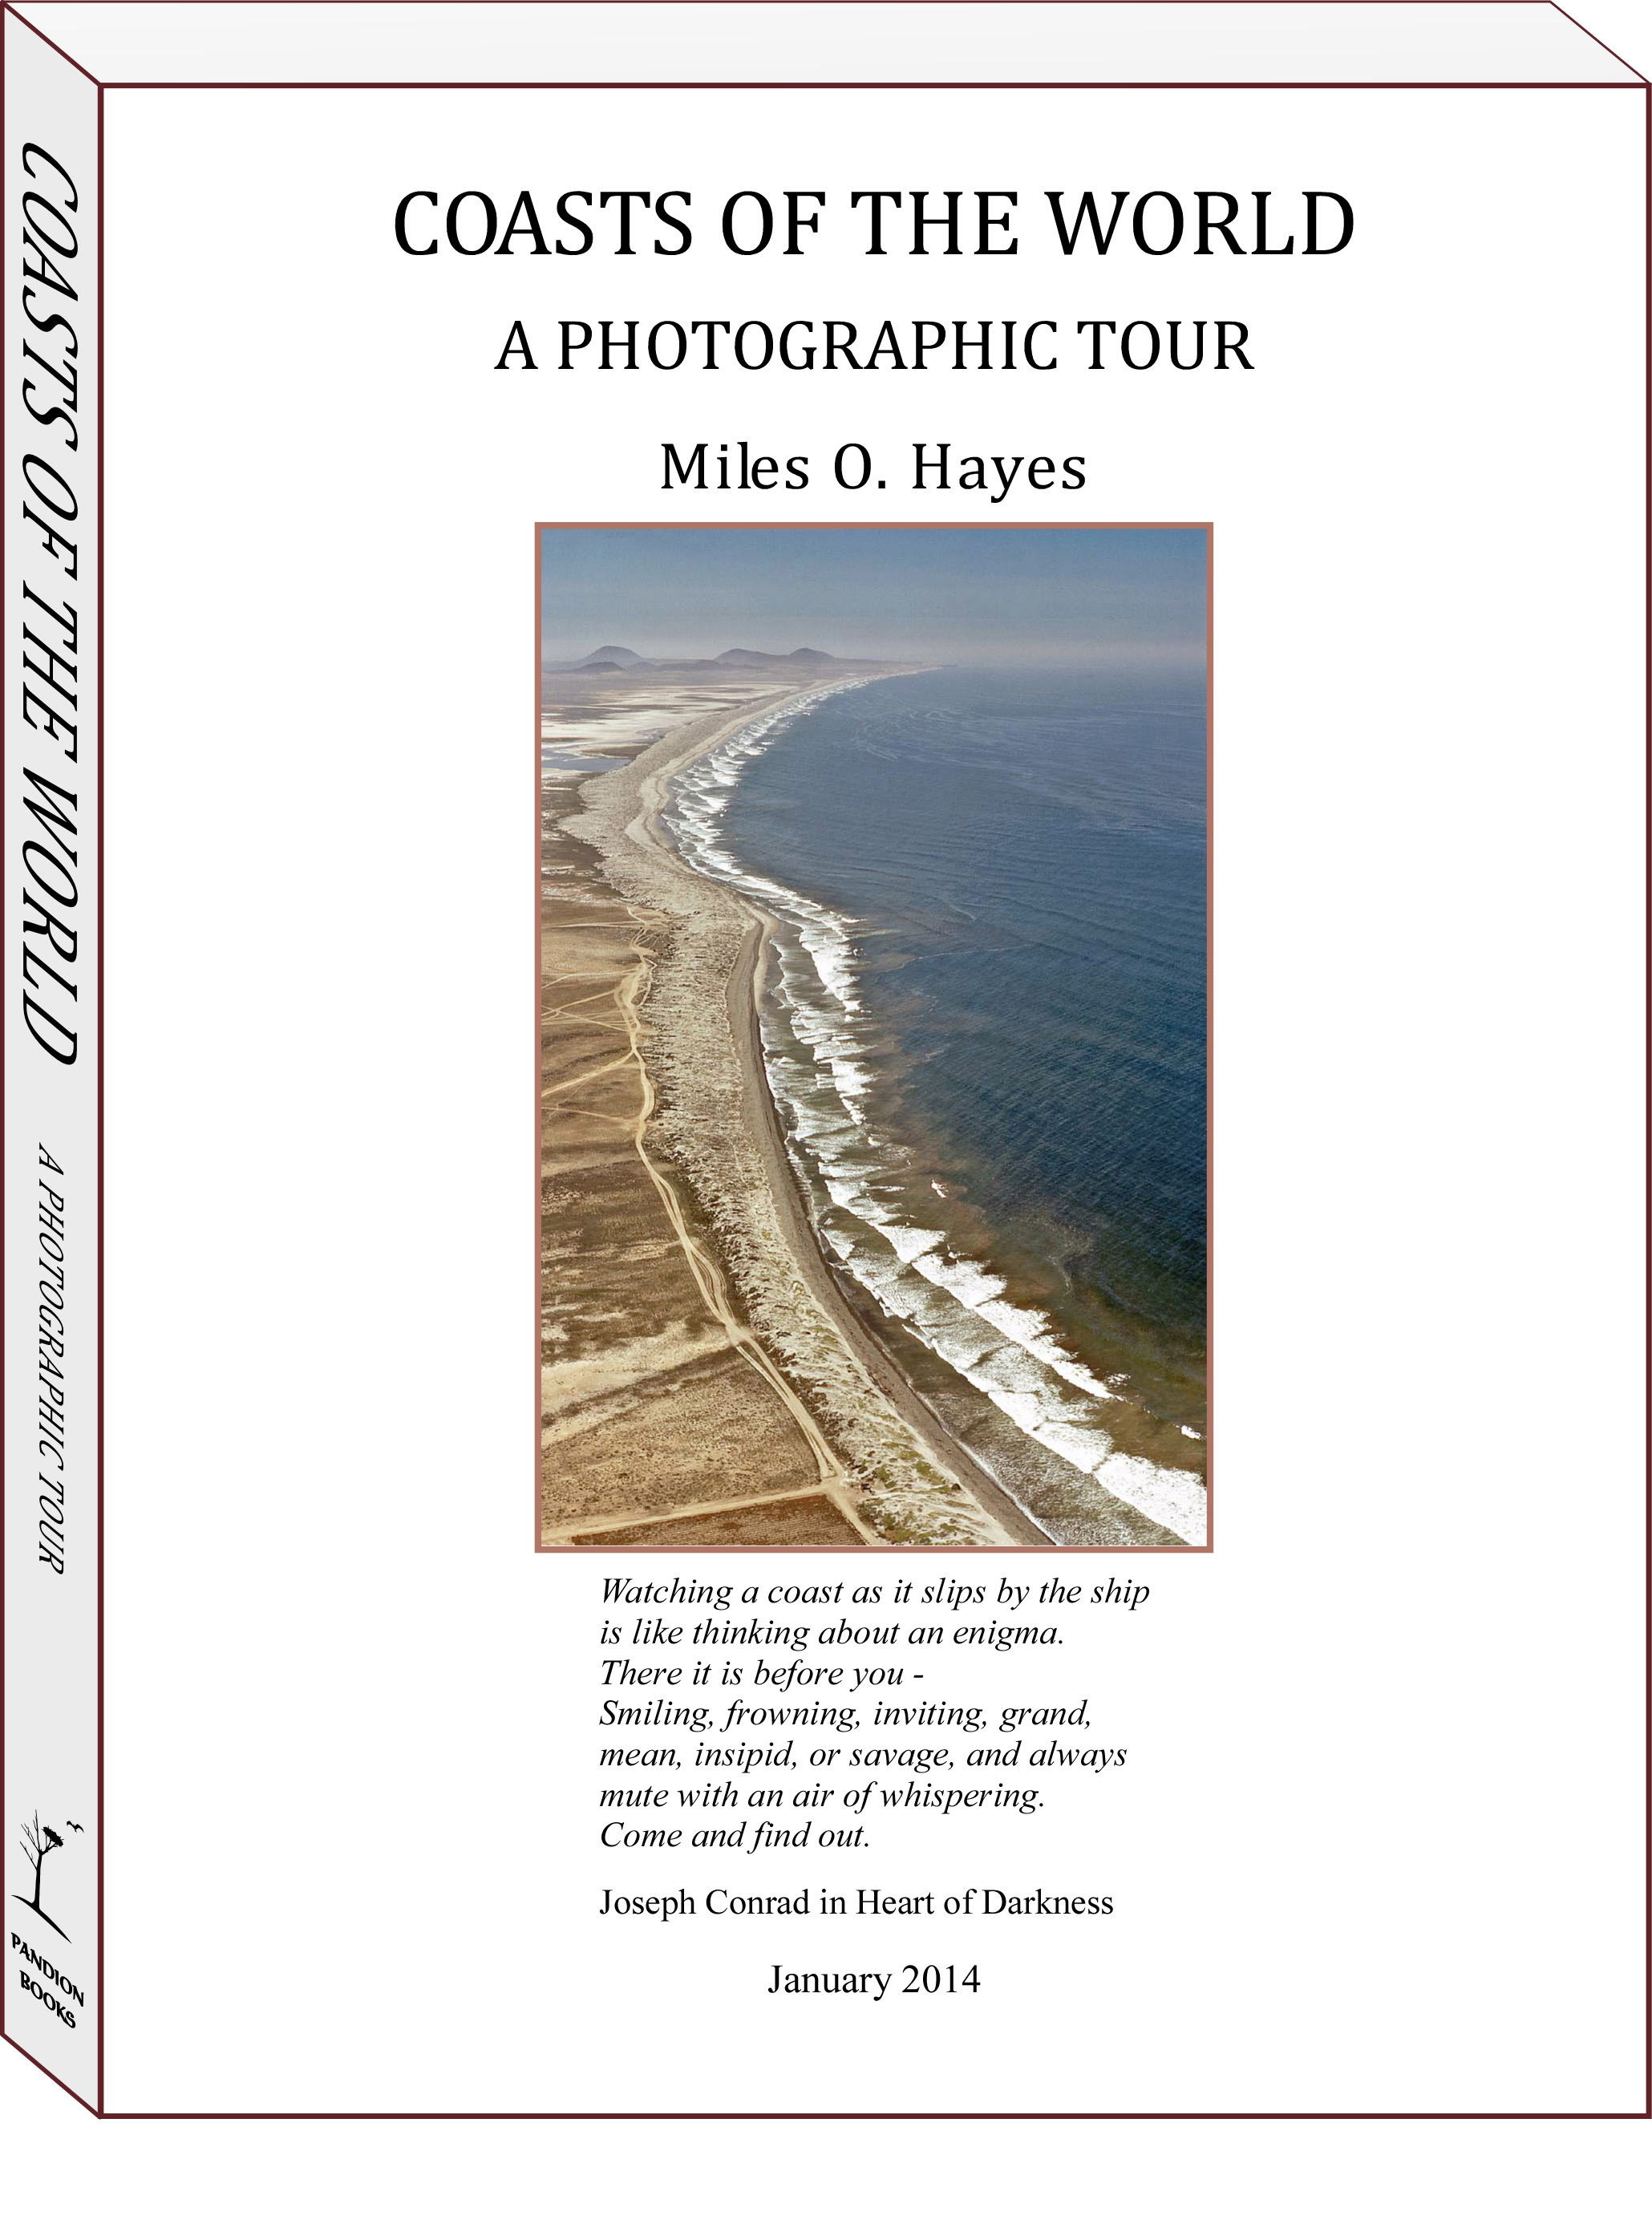 Coasts of the World - A Photographic Tour